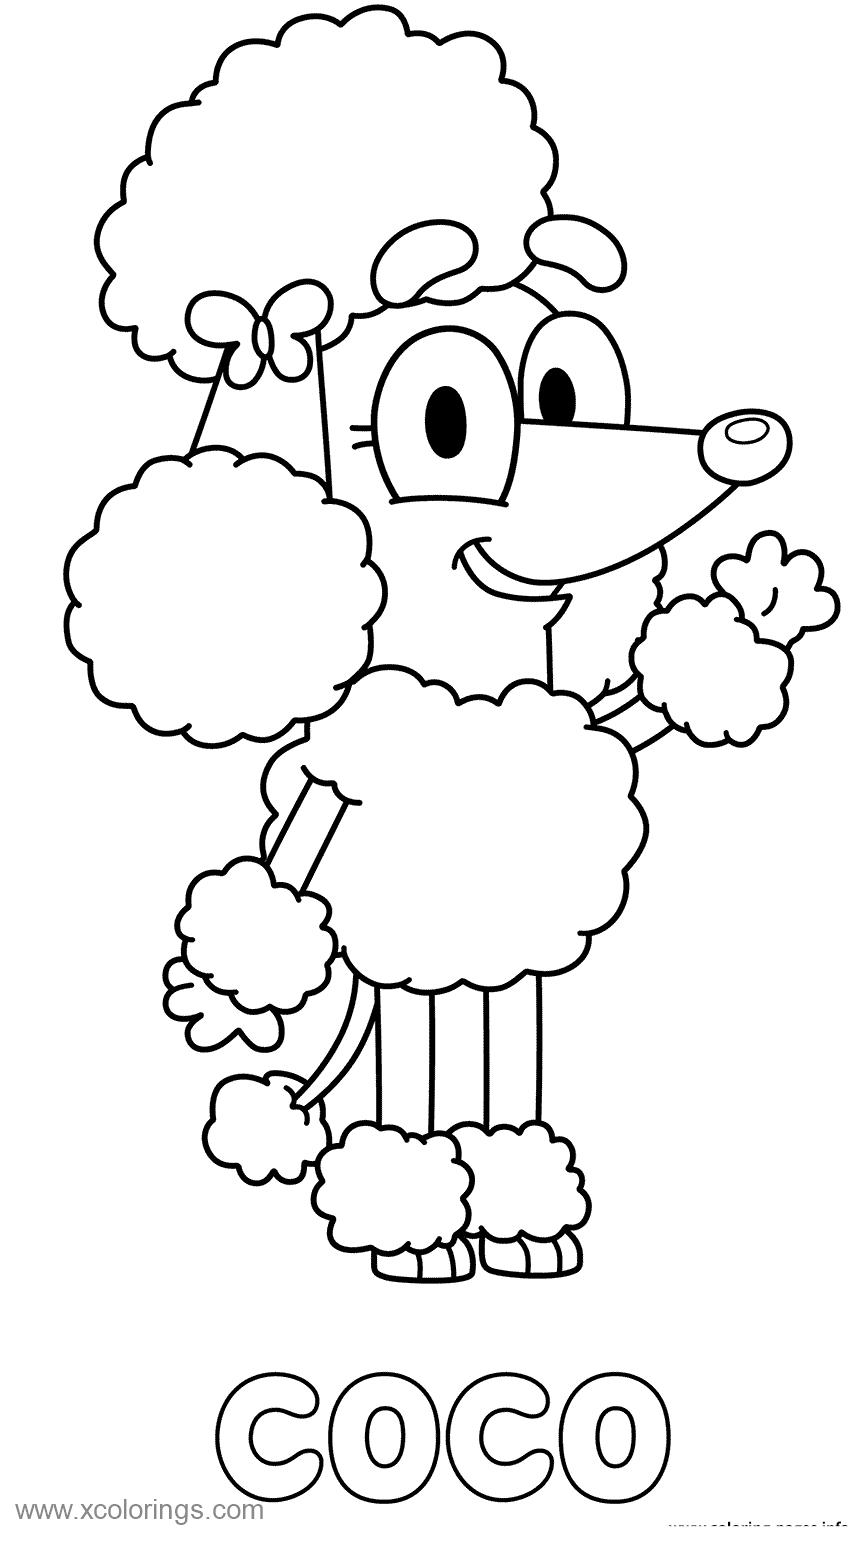 Free Coco from Bluey Coloring Pages printable